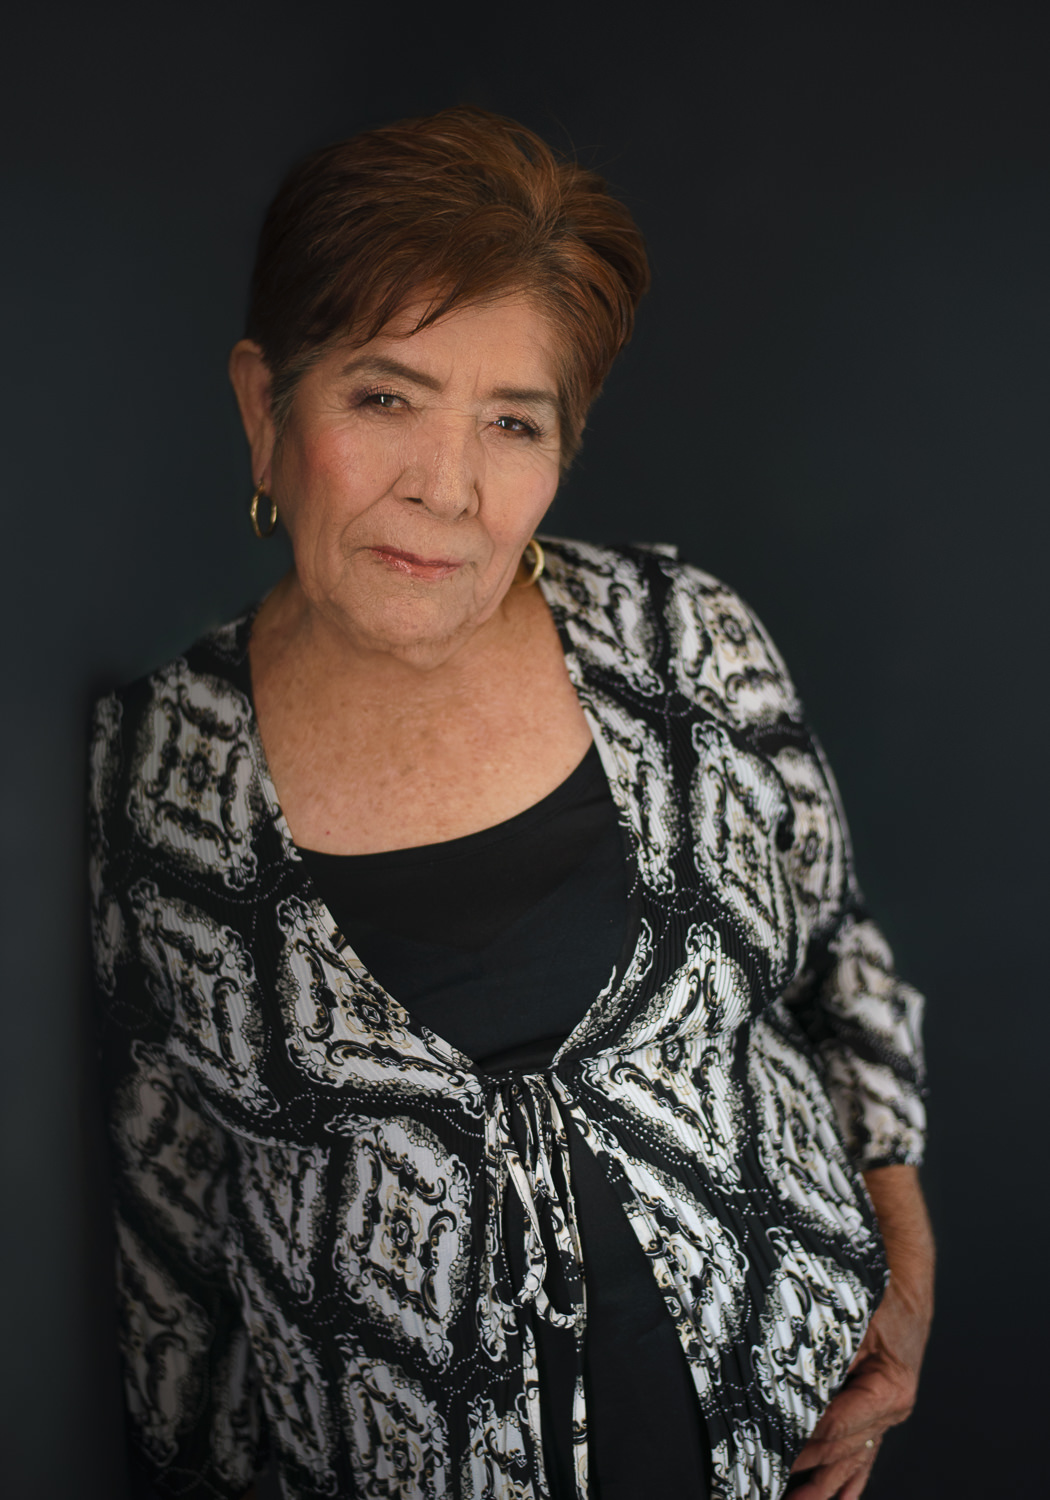 Melissa-Alcantar-Fotografia-mexicali-retrato-mature-photo-session-Paula-black-blouse